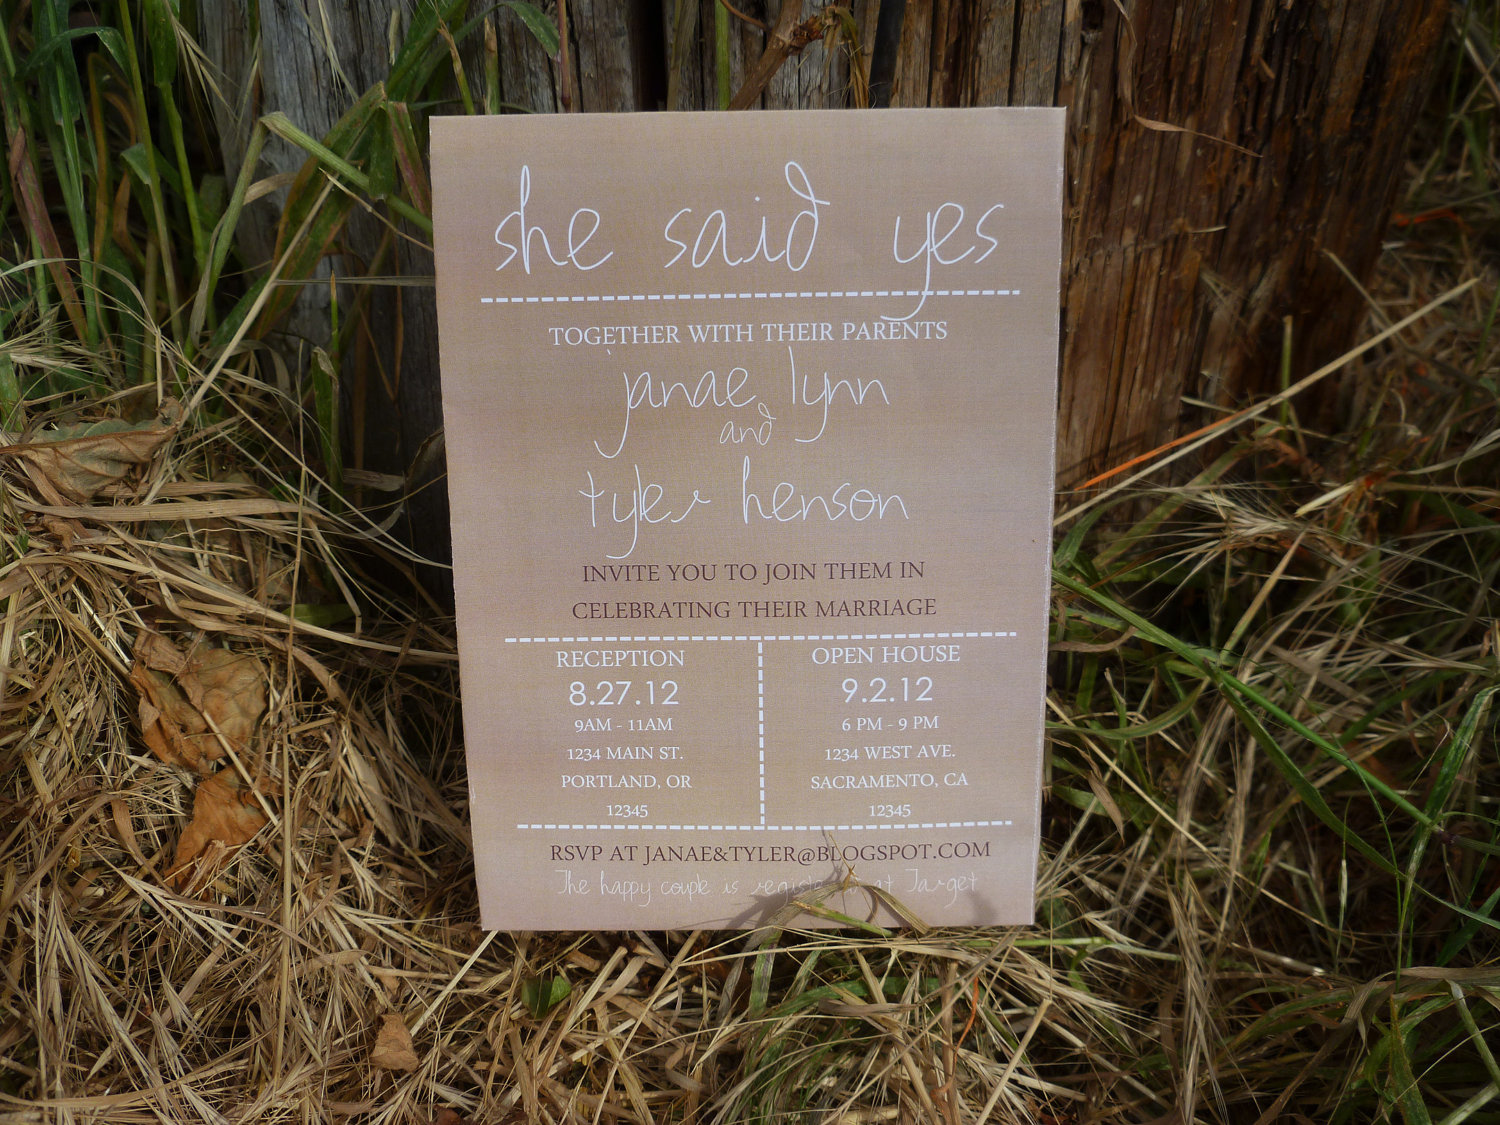 Country Style Weding Invitations 08 - Country Style Weding Invitations